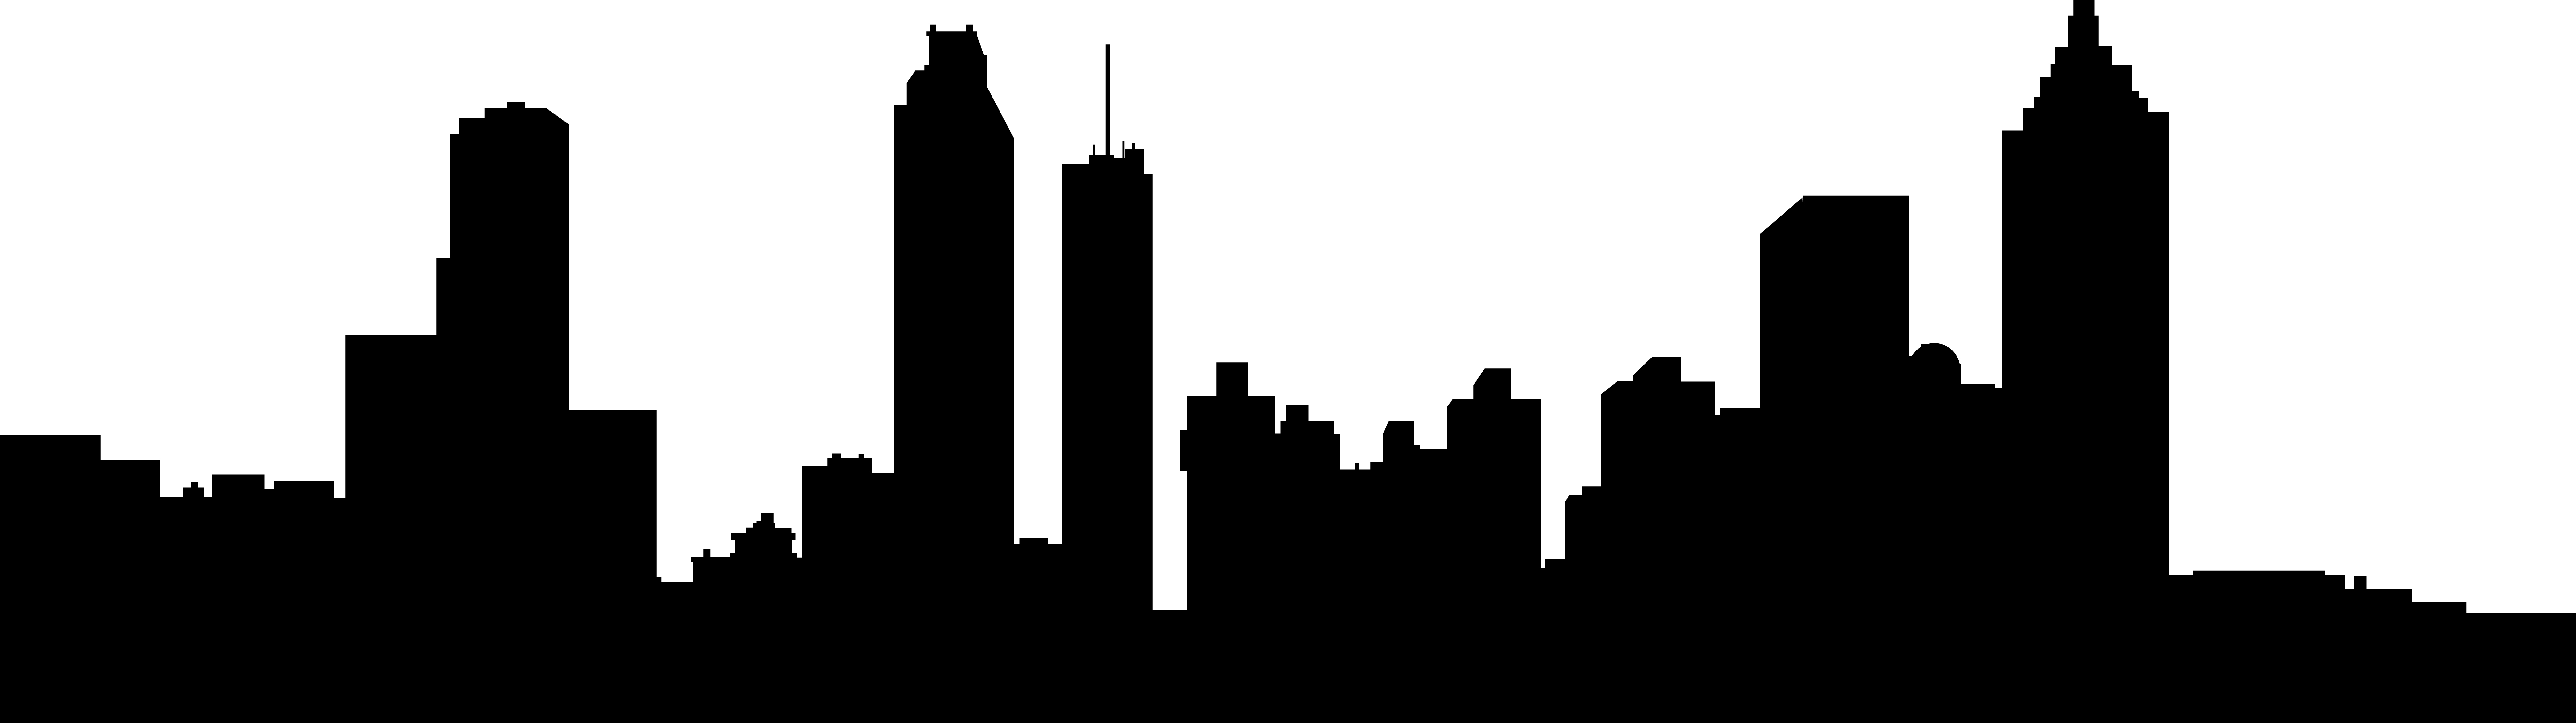 8059x2261 City Skyline Clipart Png